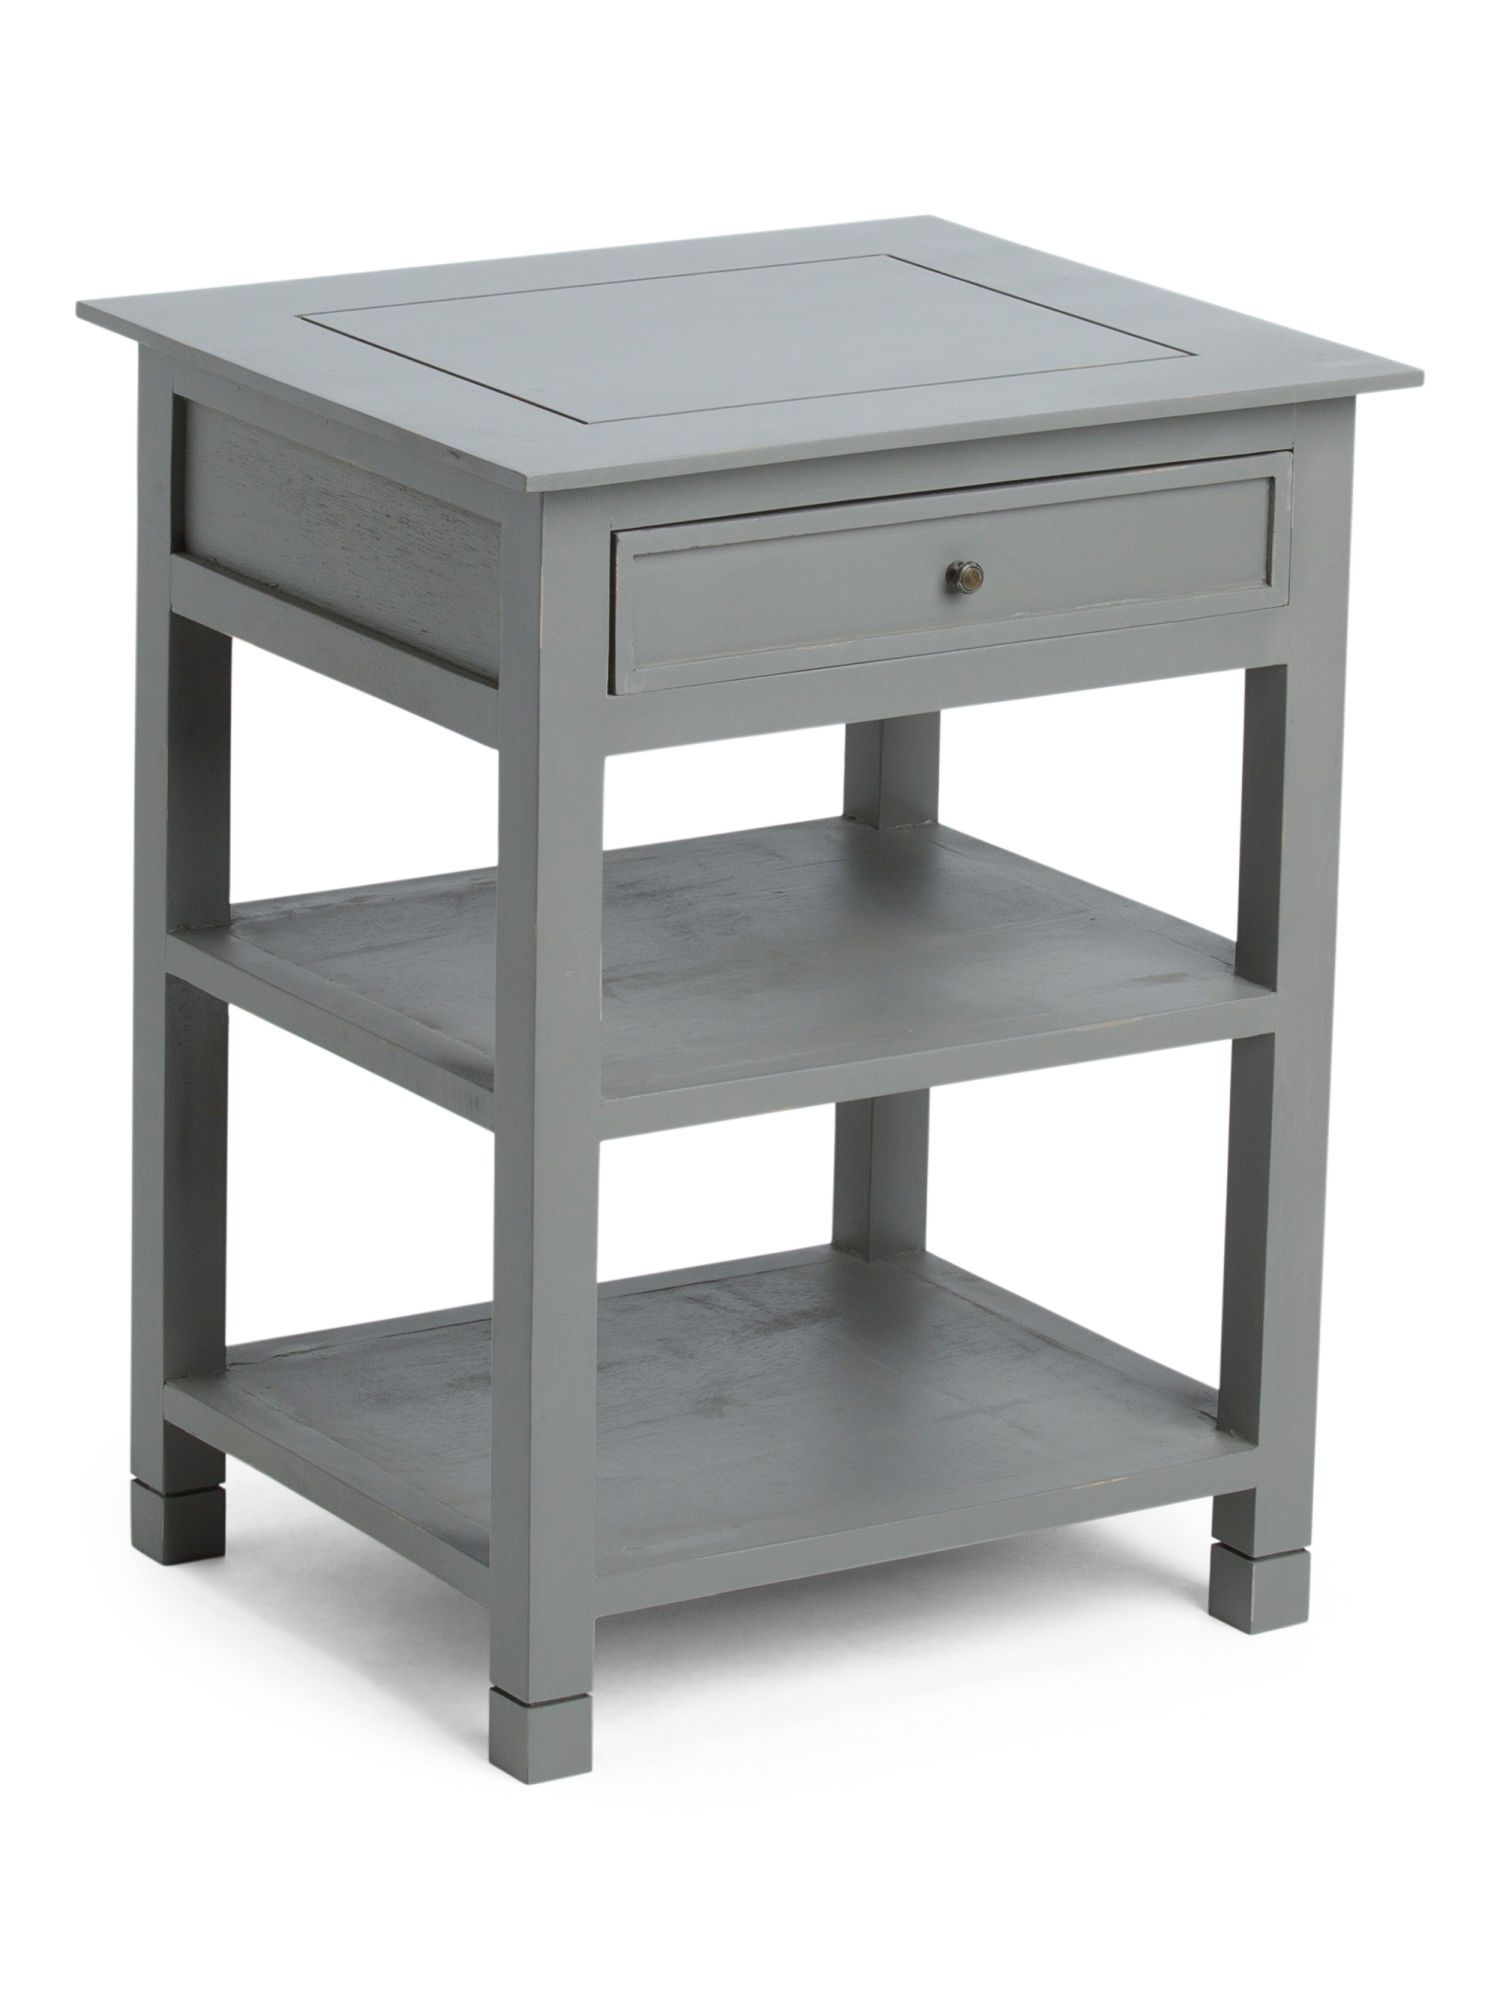 Printer Stand, Tj Maxx, Wood Side Tables, Home Office, Accent Furniture,  Home Accents, Mango, Home Home, Printers